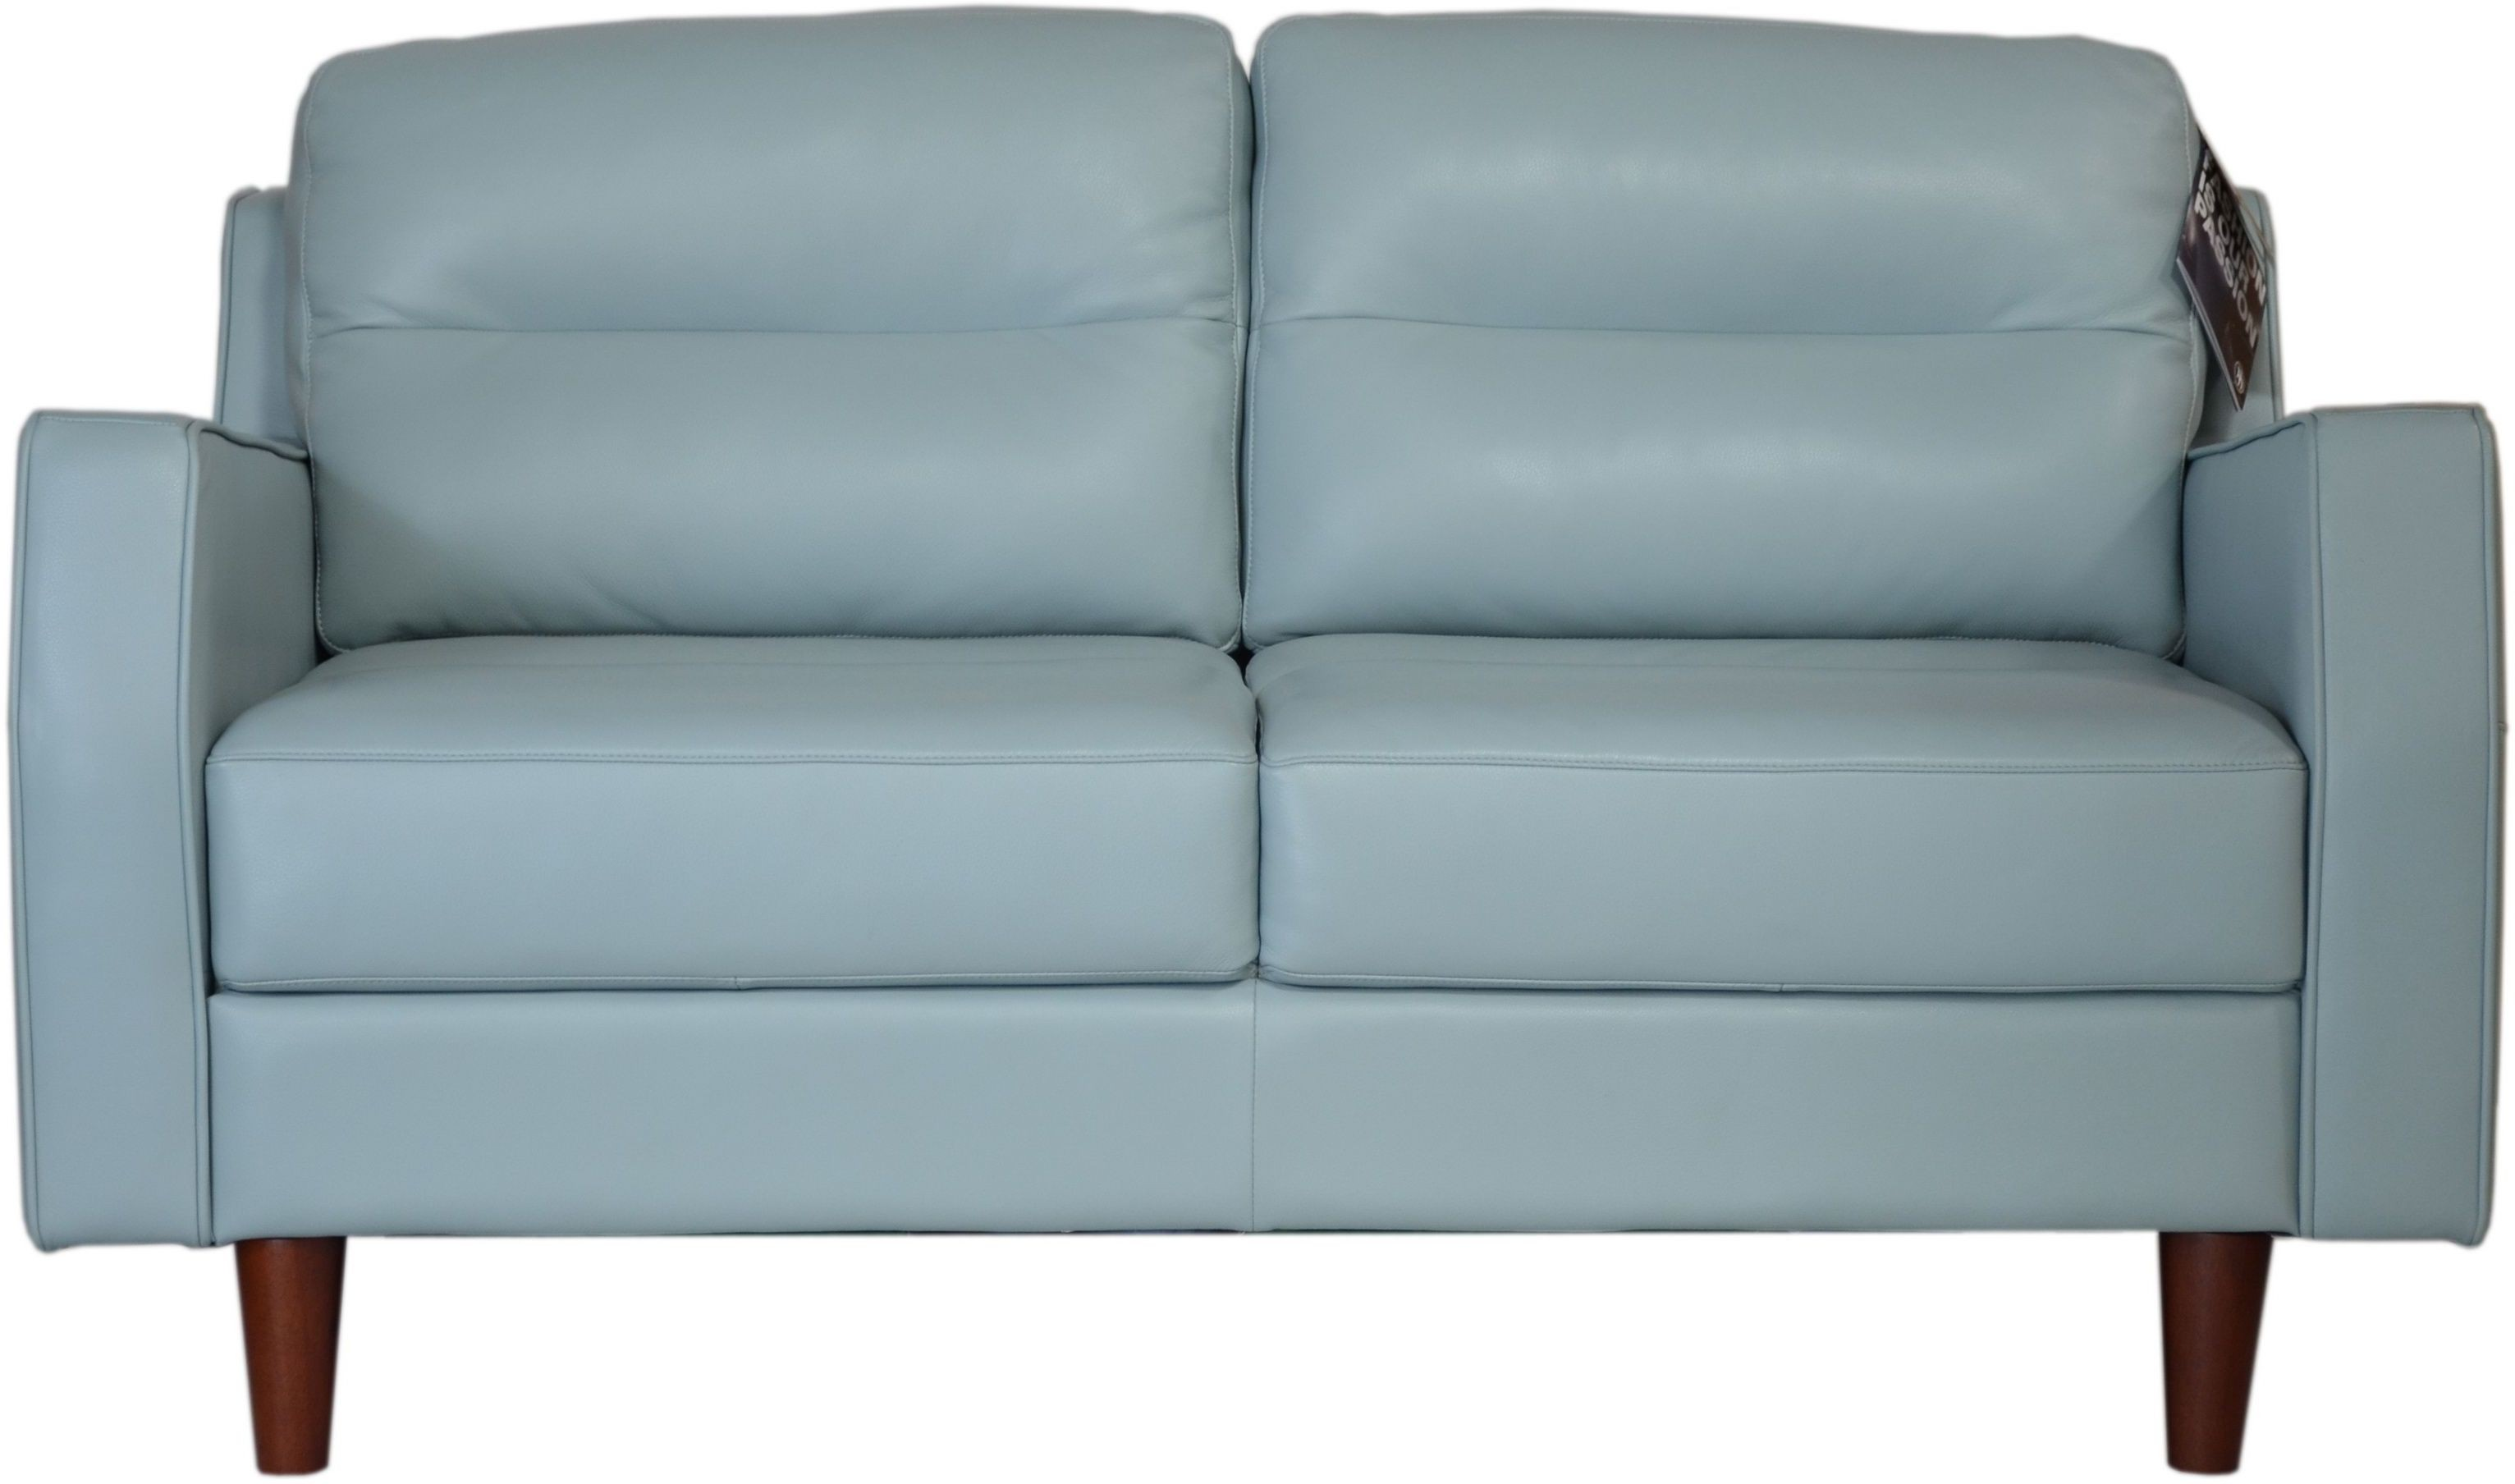 Isabel Bluette Leather Loveseat From Moroni Coleman